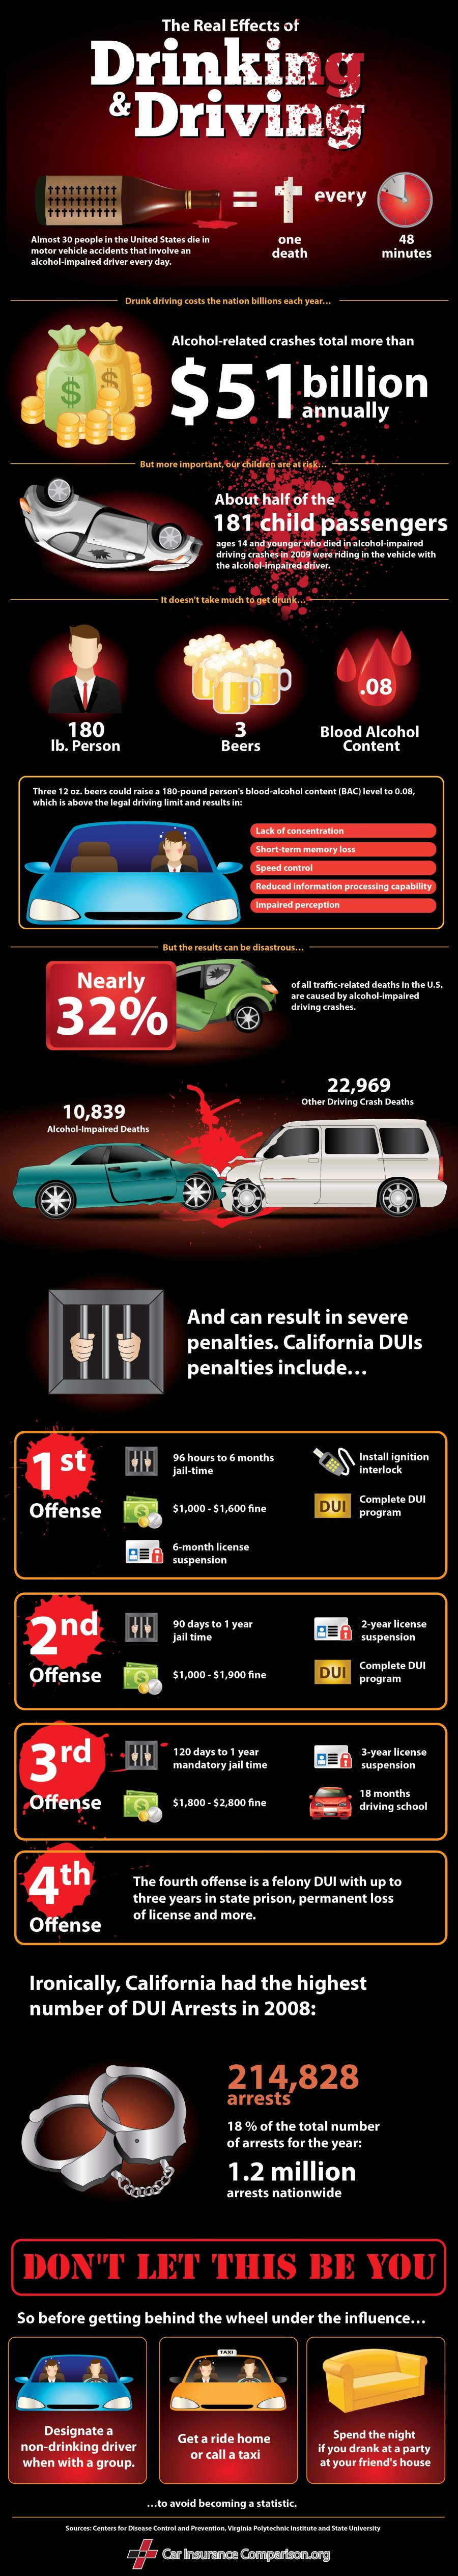 drunkdriving900 The Real Effects Of Drinking and Driving [Infographic]